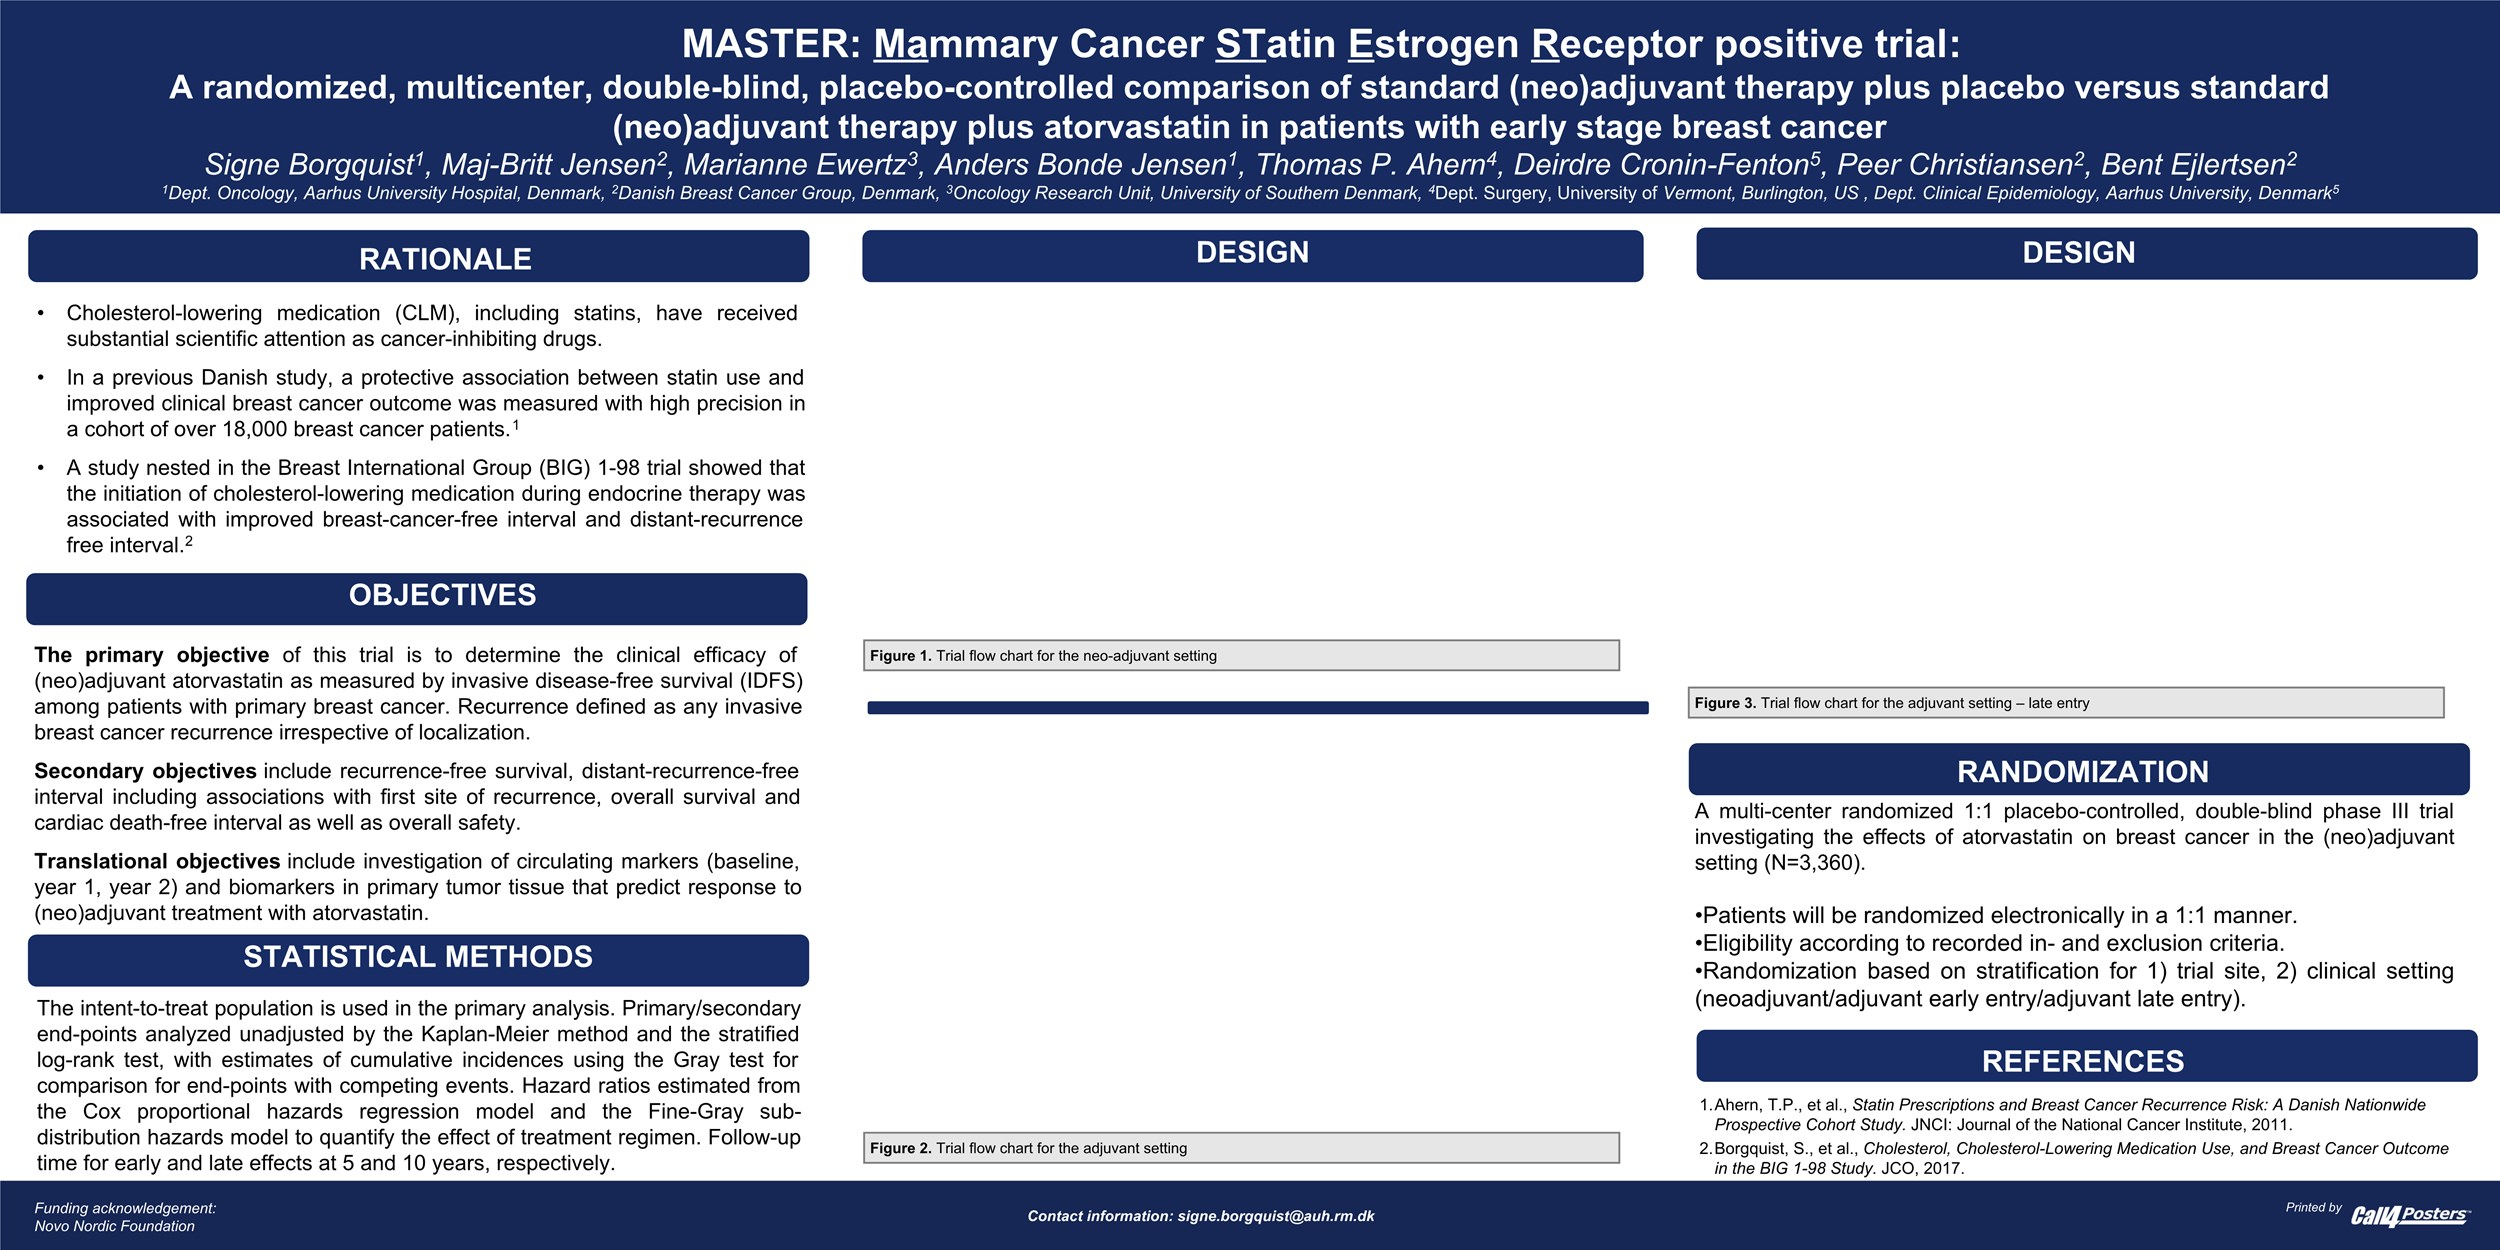 A randomized, multicenter, double-blind, placebo-controlled comparison of standard (neo)adjuvant therapy plus placebo versus standard (neo)adjuvant therapy plus atorvastatin in patients with early stage breast cancer